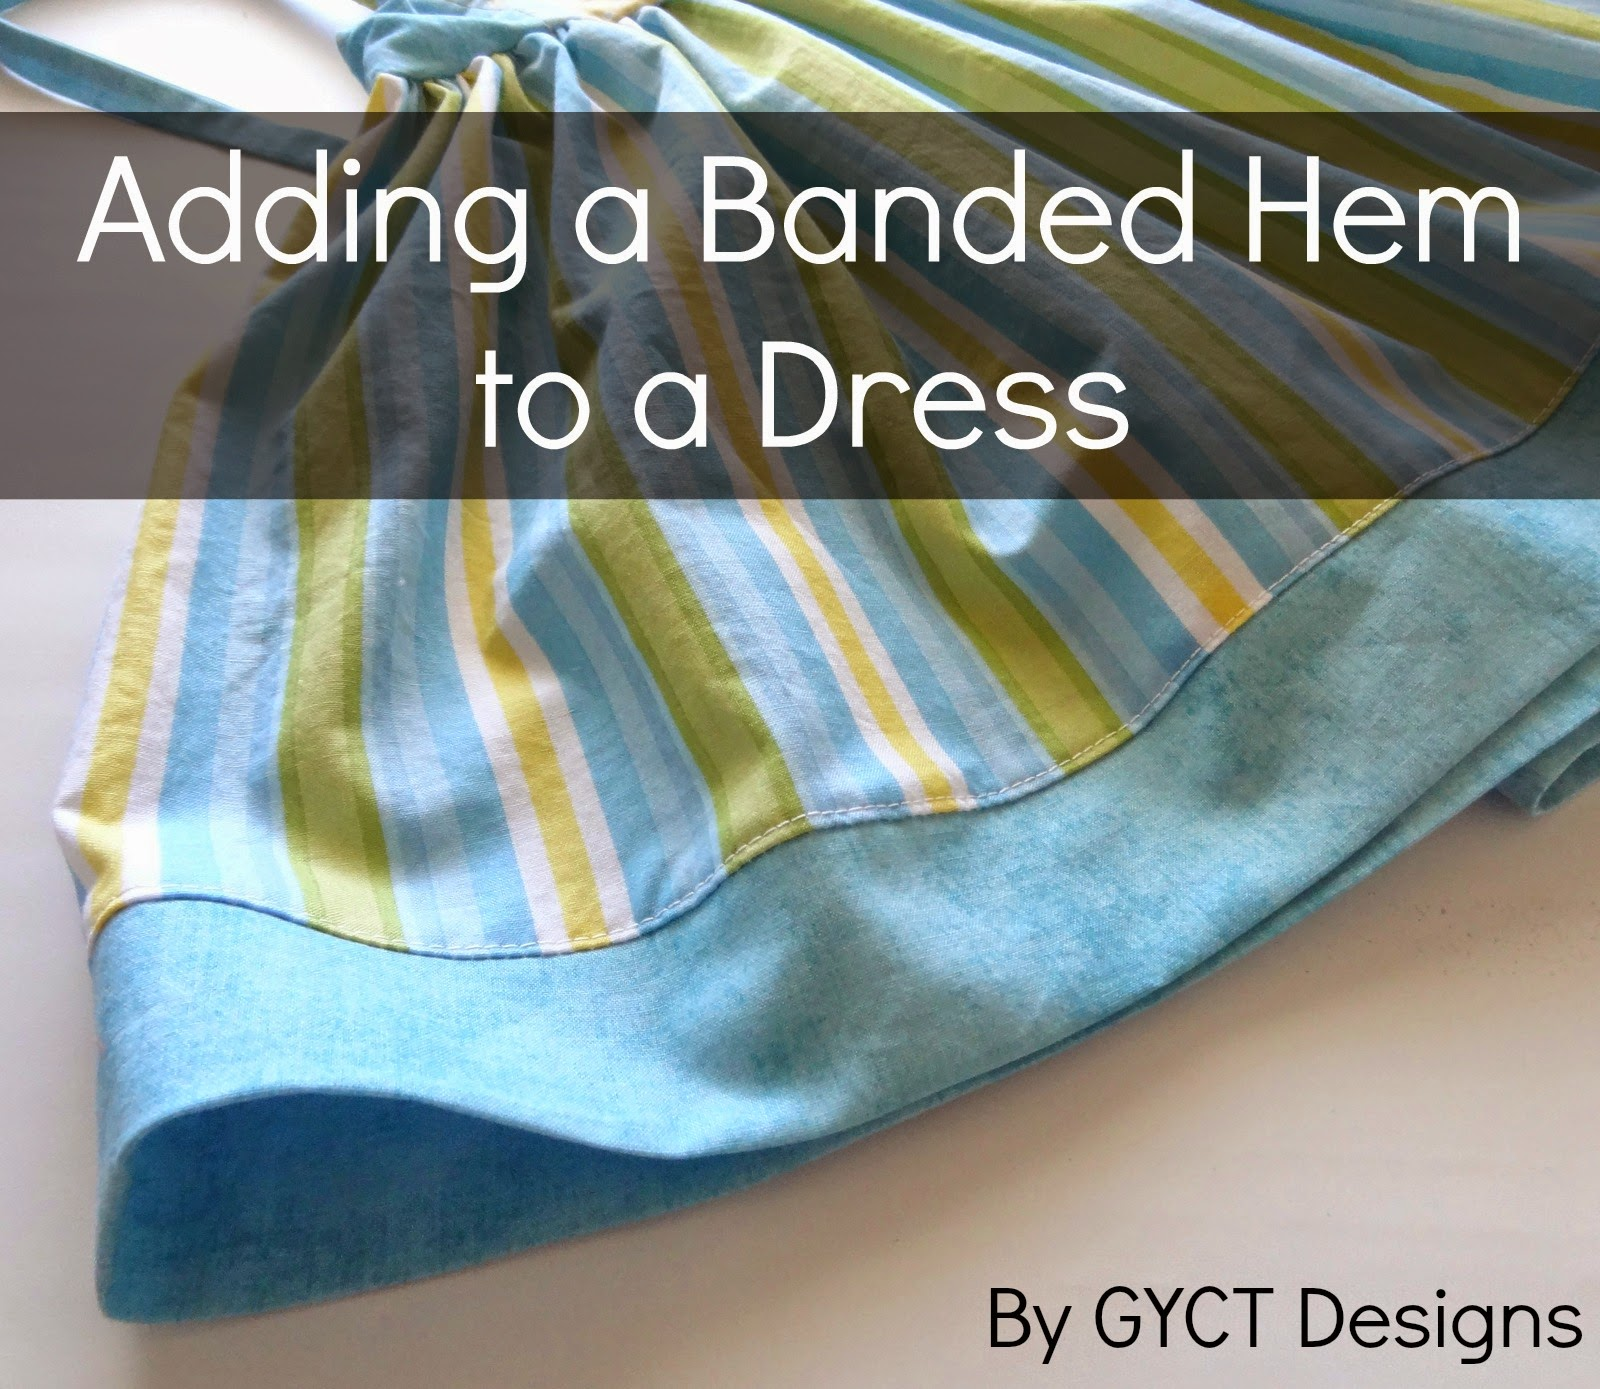 Adding a Banded Hem to a Dress by GYCT